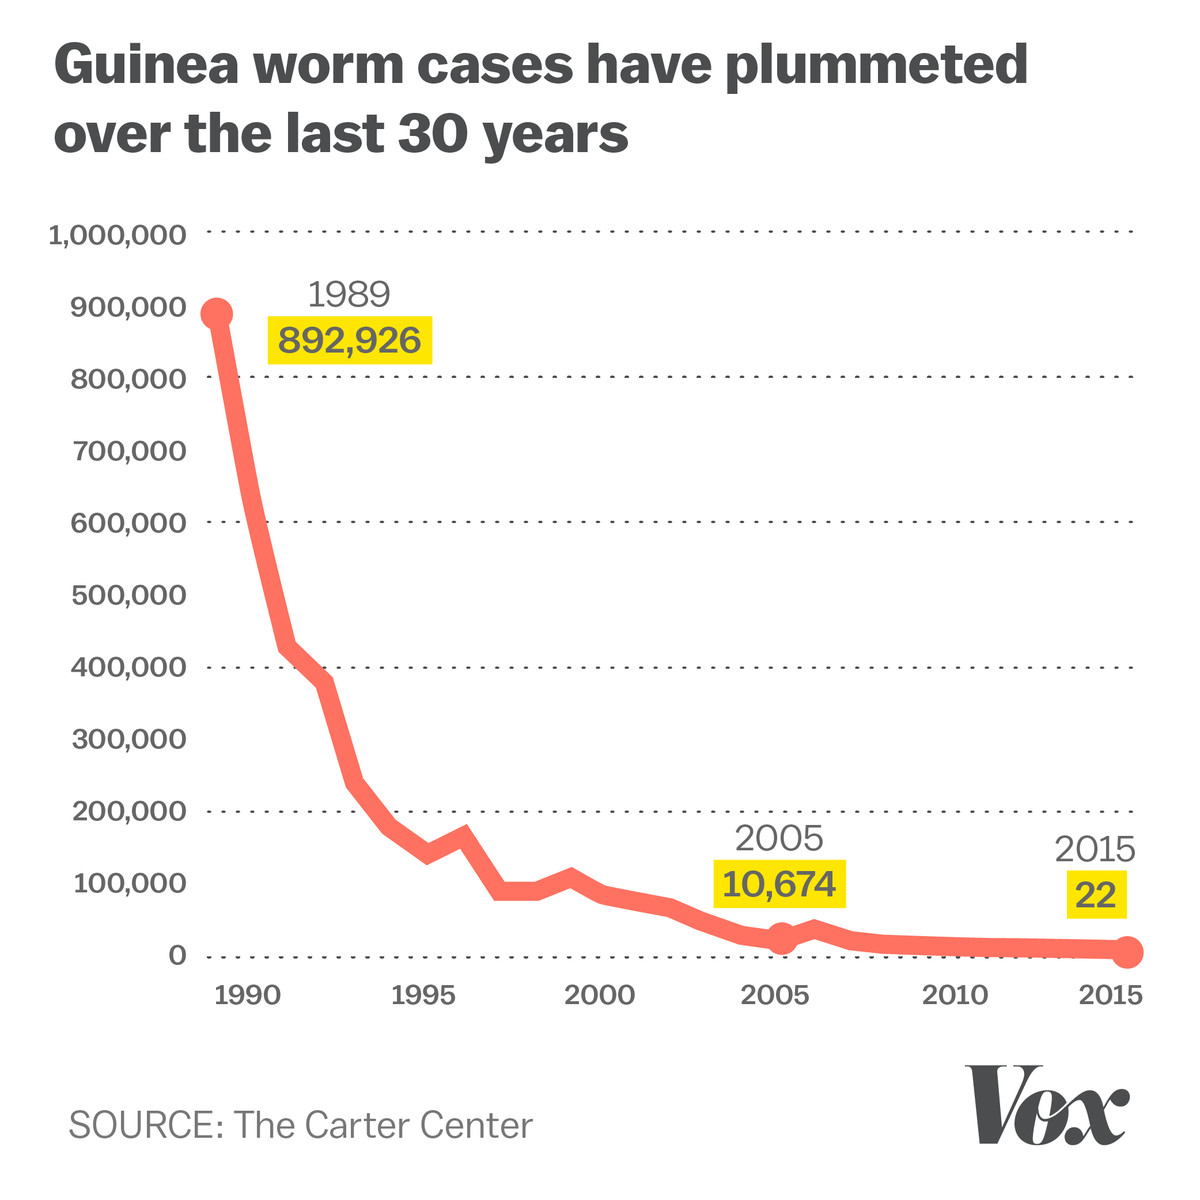 Guinea worm cases have plummeted over the last 30 years